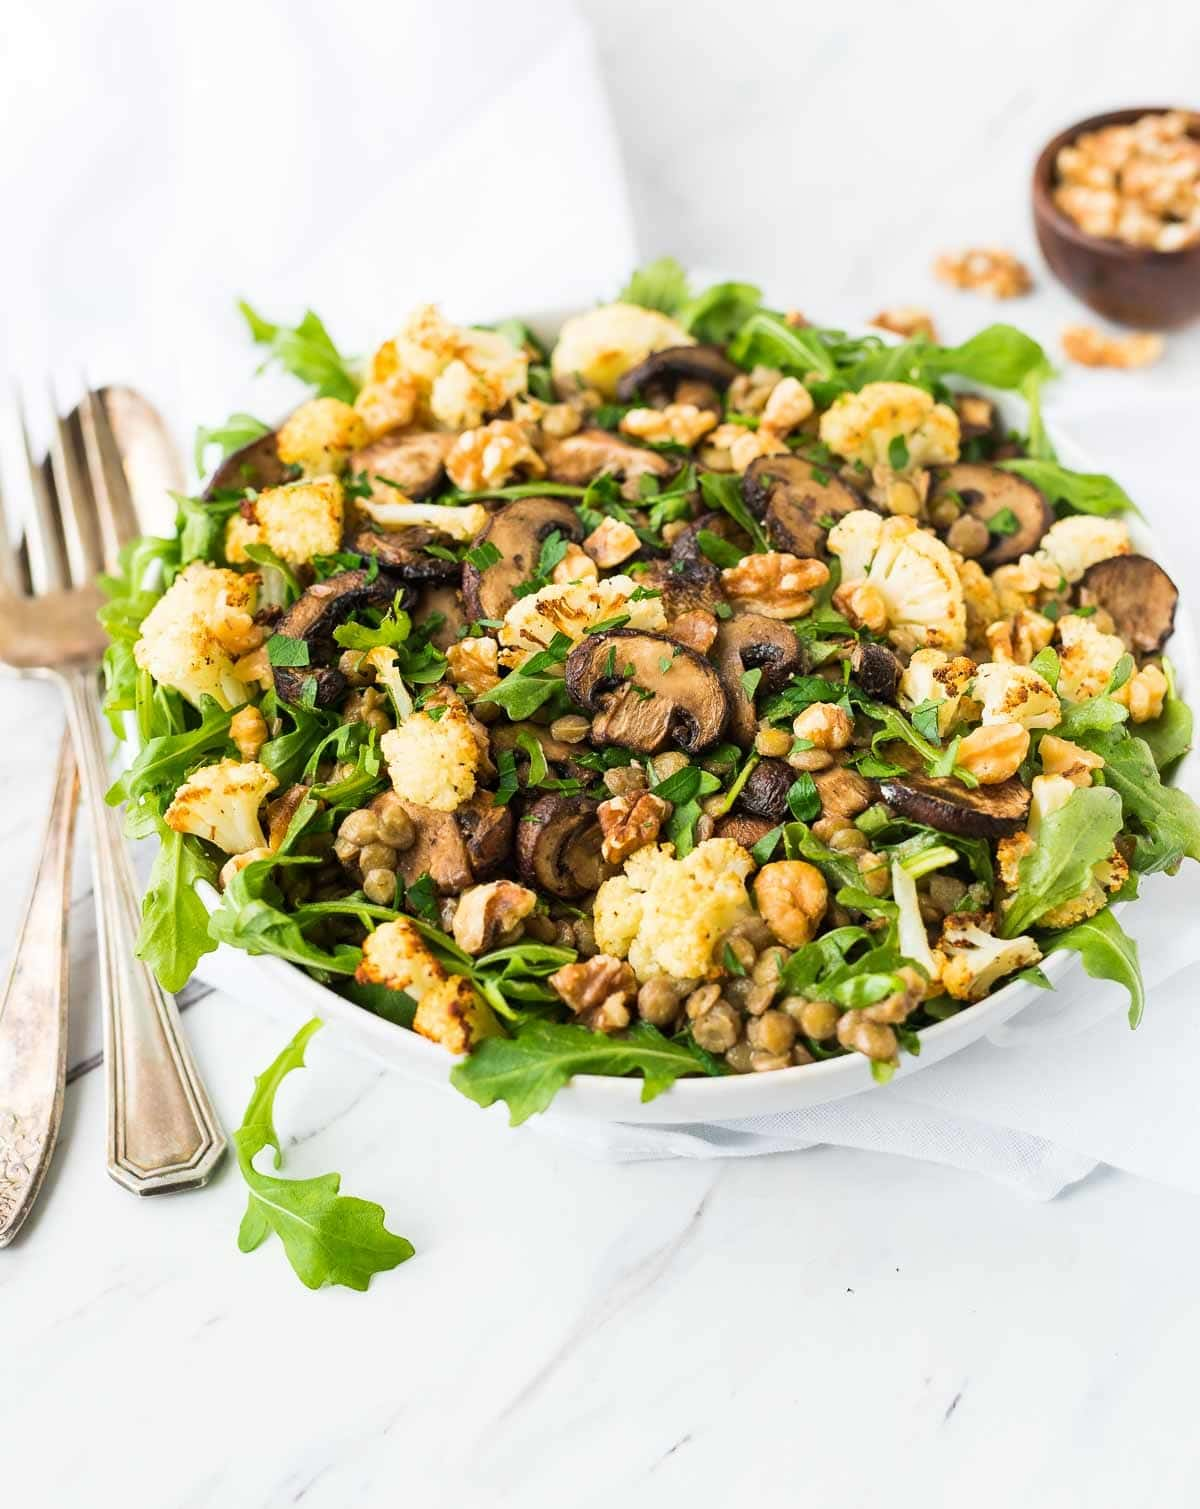 Green Lentil Salad with Roasted Cauliflower and Mushrooms. Bright, healthy, and filling! {vegan, gluten free} Recipe at wellplated.com | @wellplated